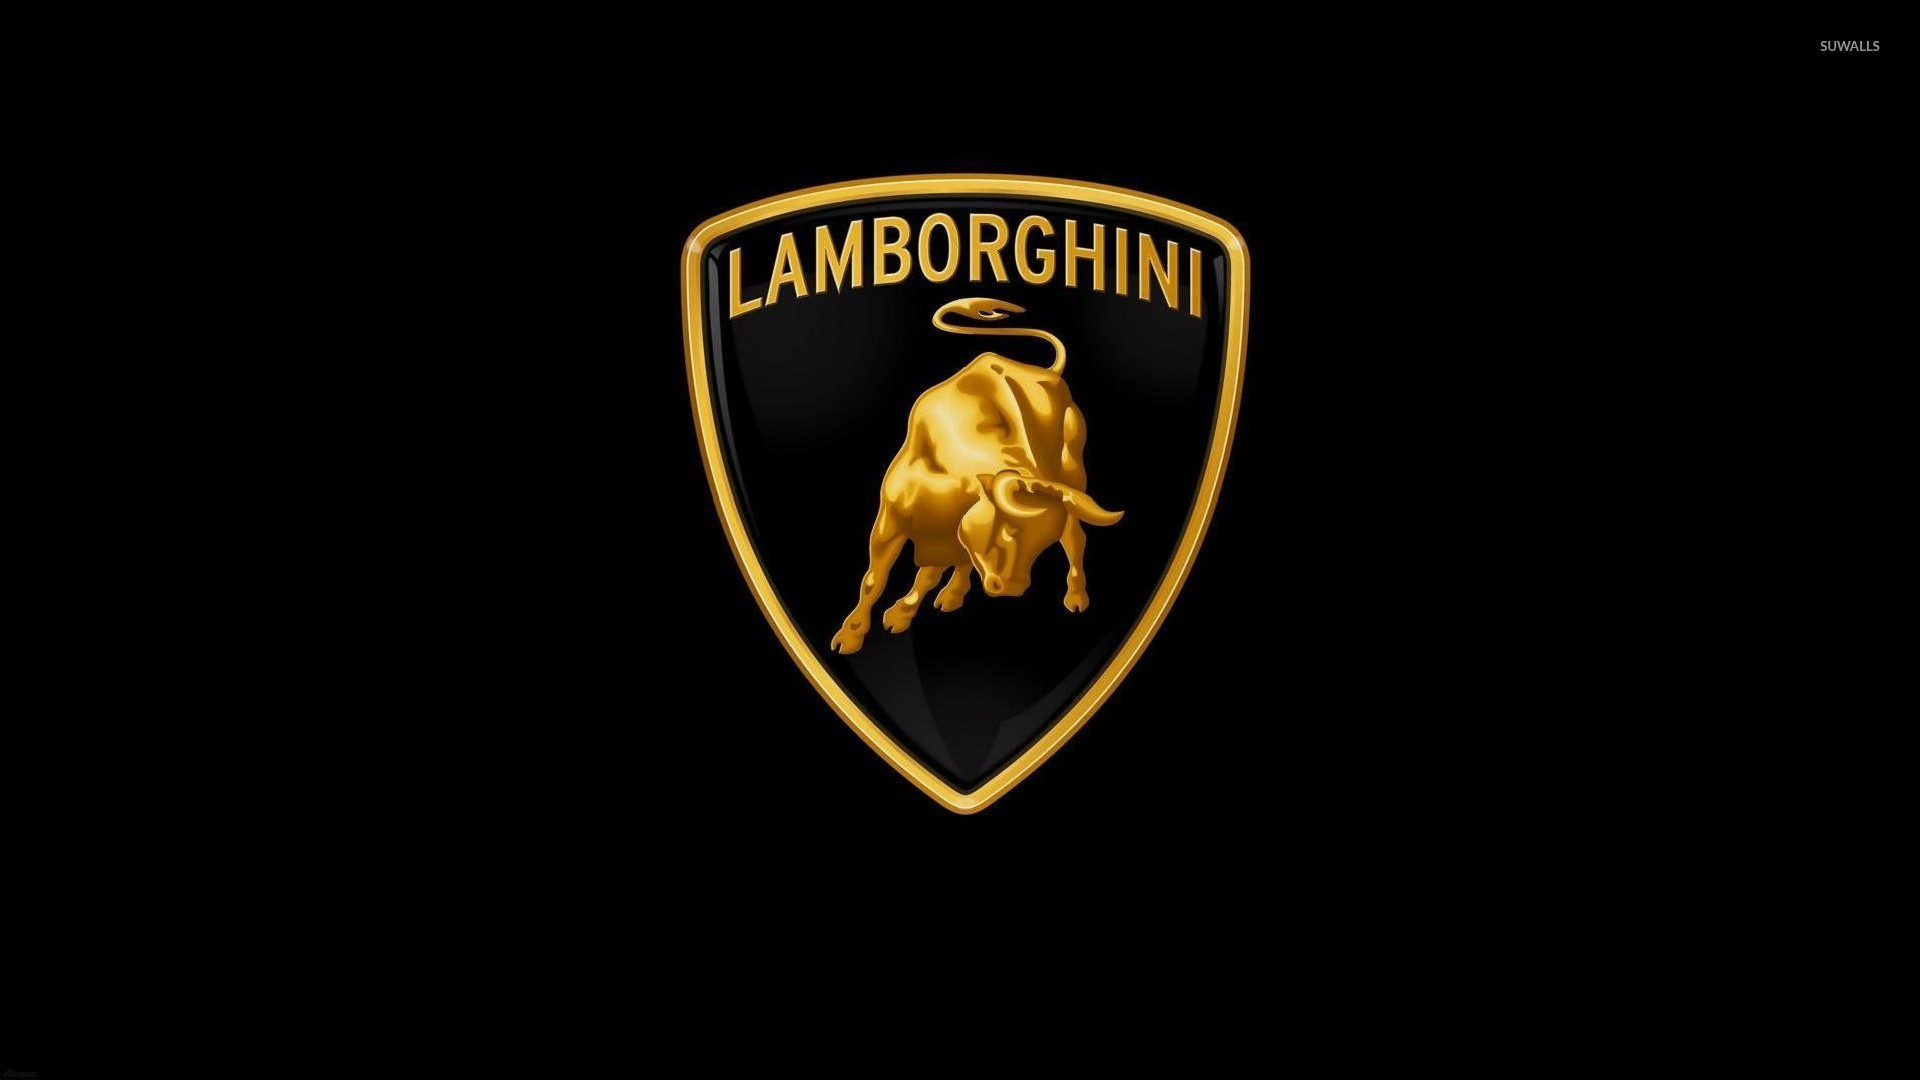 Golden Lamborghini Logo Wallpaper Car Wallpapers 53750